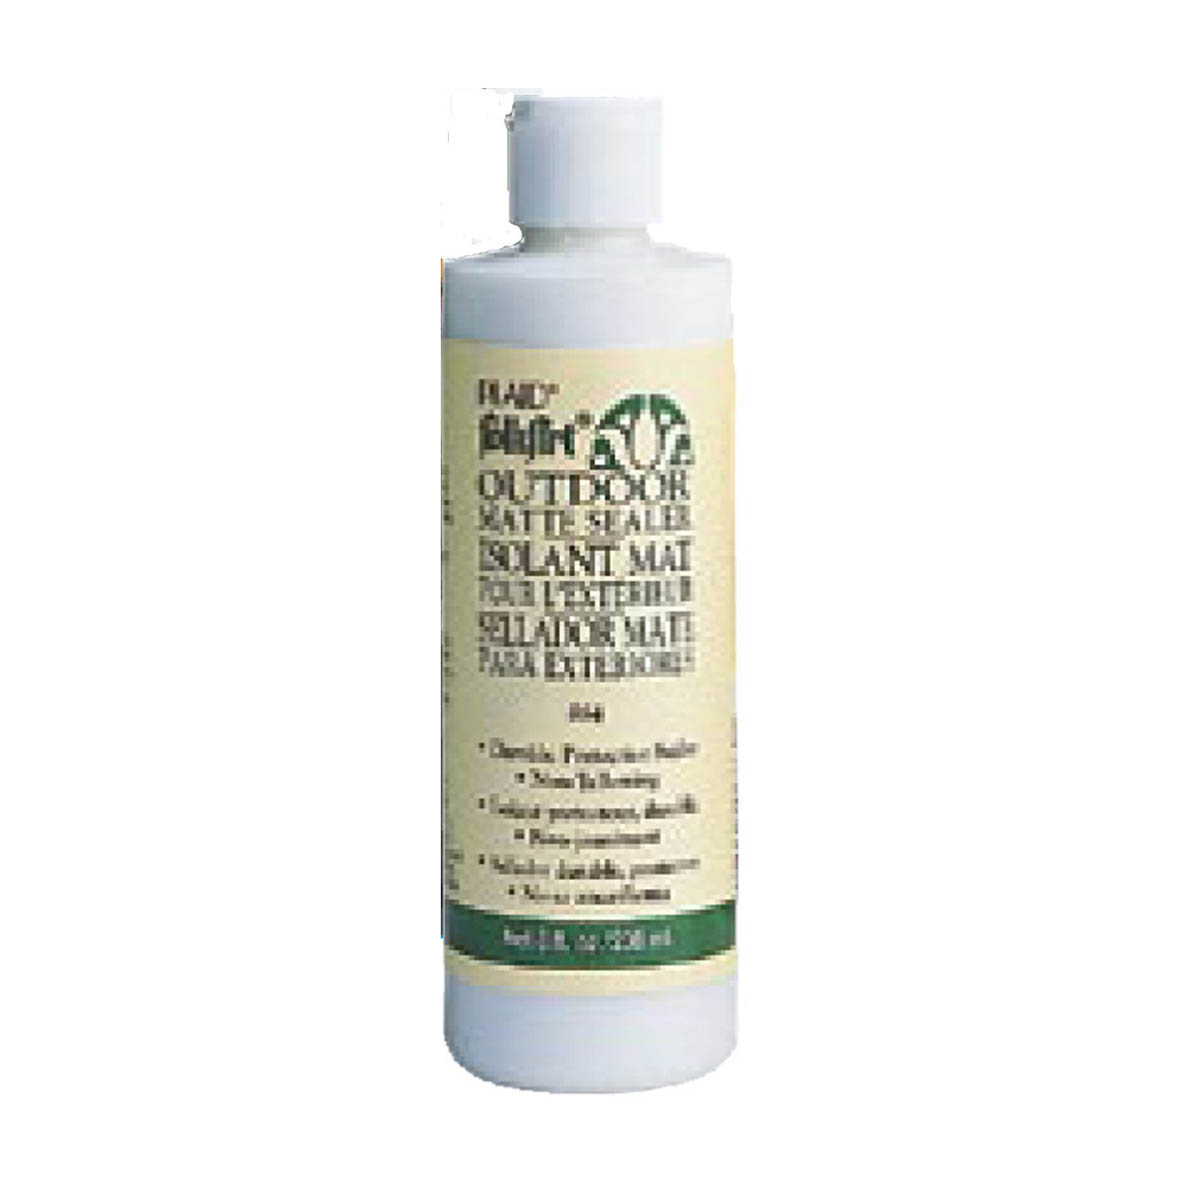 FolkArt ® Finishes - Outdoor Sealer - Gloss, 2 oz.